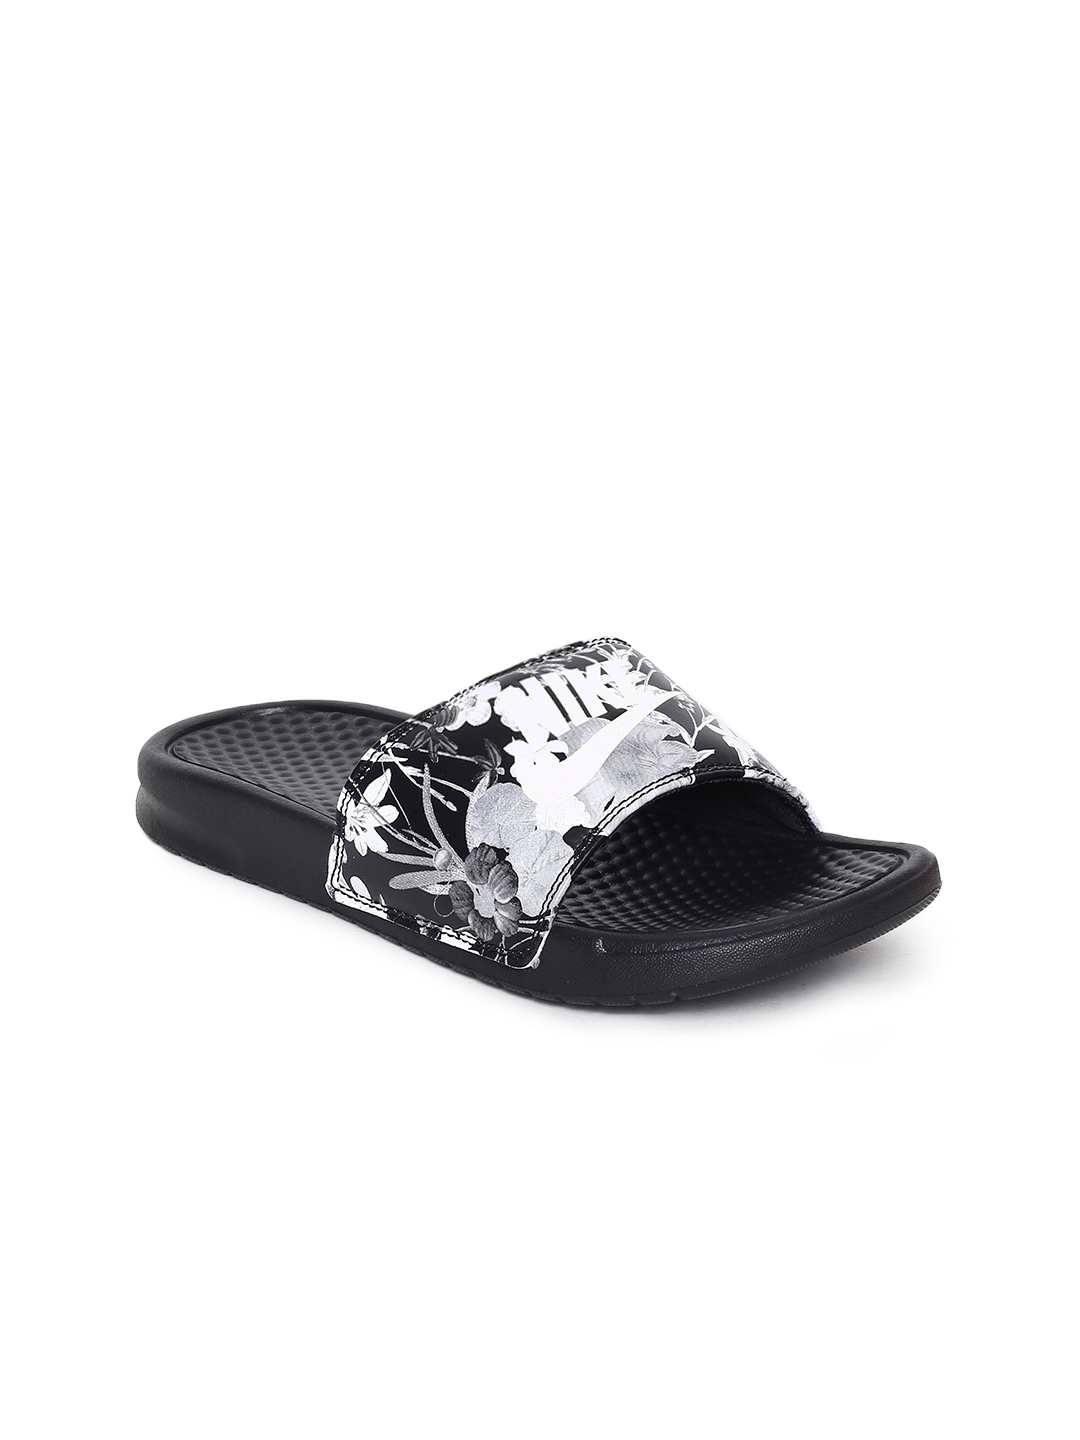 51663e13d48e Buy Nike Women Black   White Printed Sliders WMNS BENASSI JDI PRINT ...